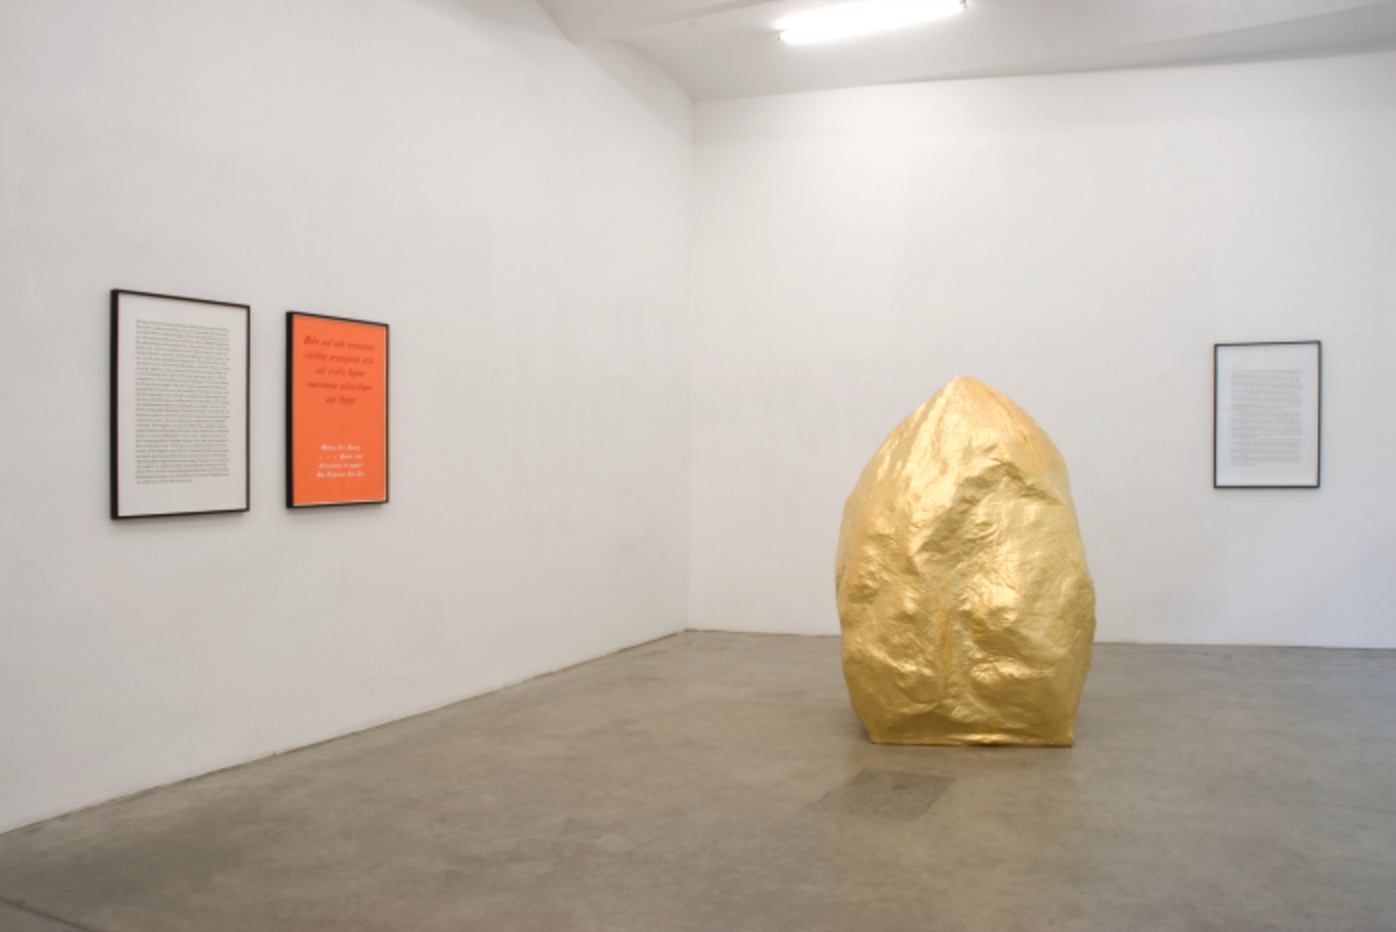 Exhibition View, Christine König Galerie, curated by_Gianni Jetzer, 2009